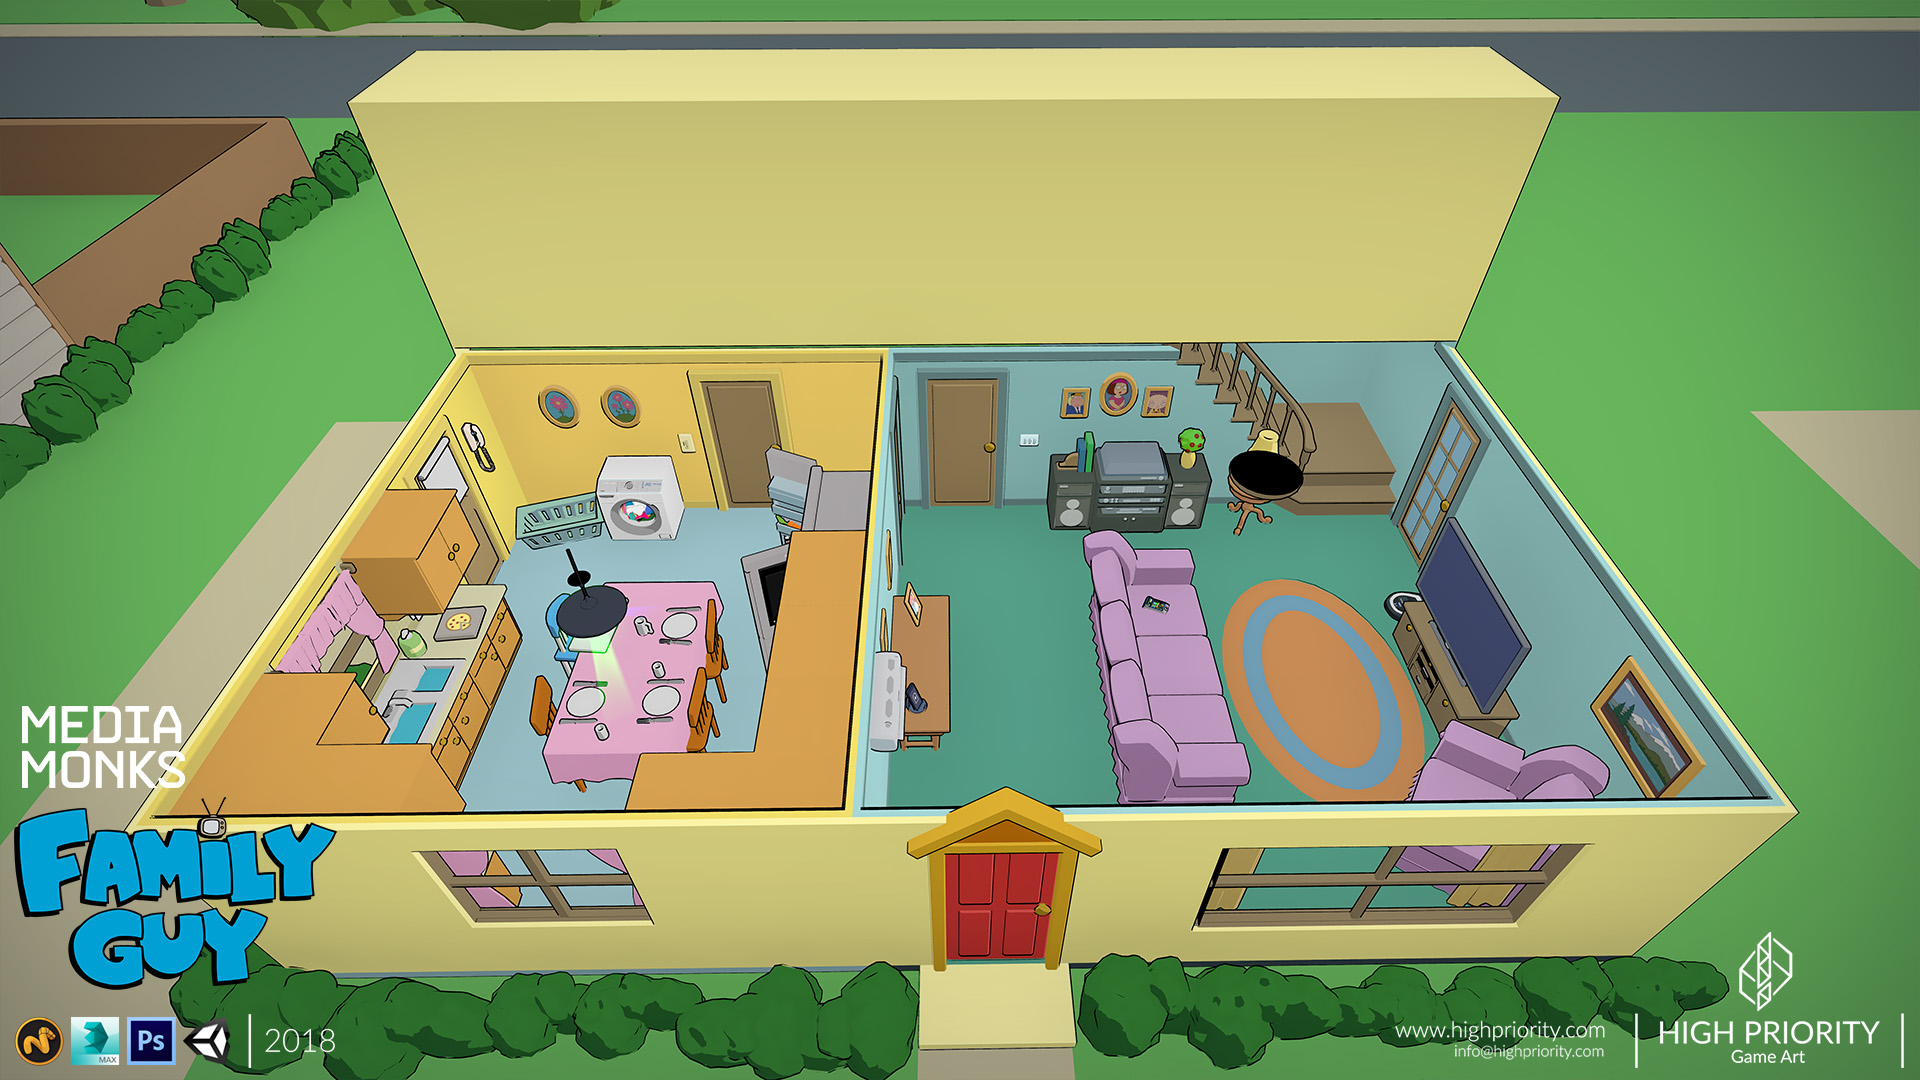 High Priority - Family Guy - Samsung - 06